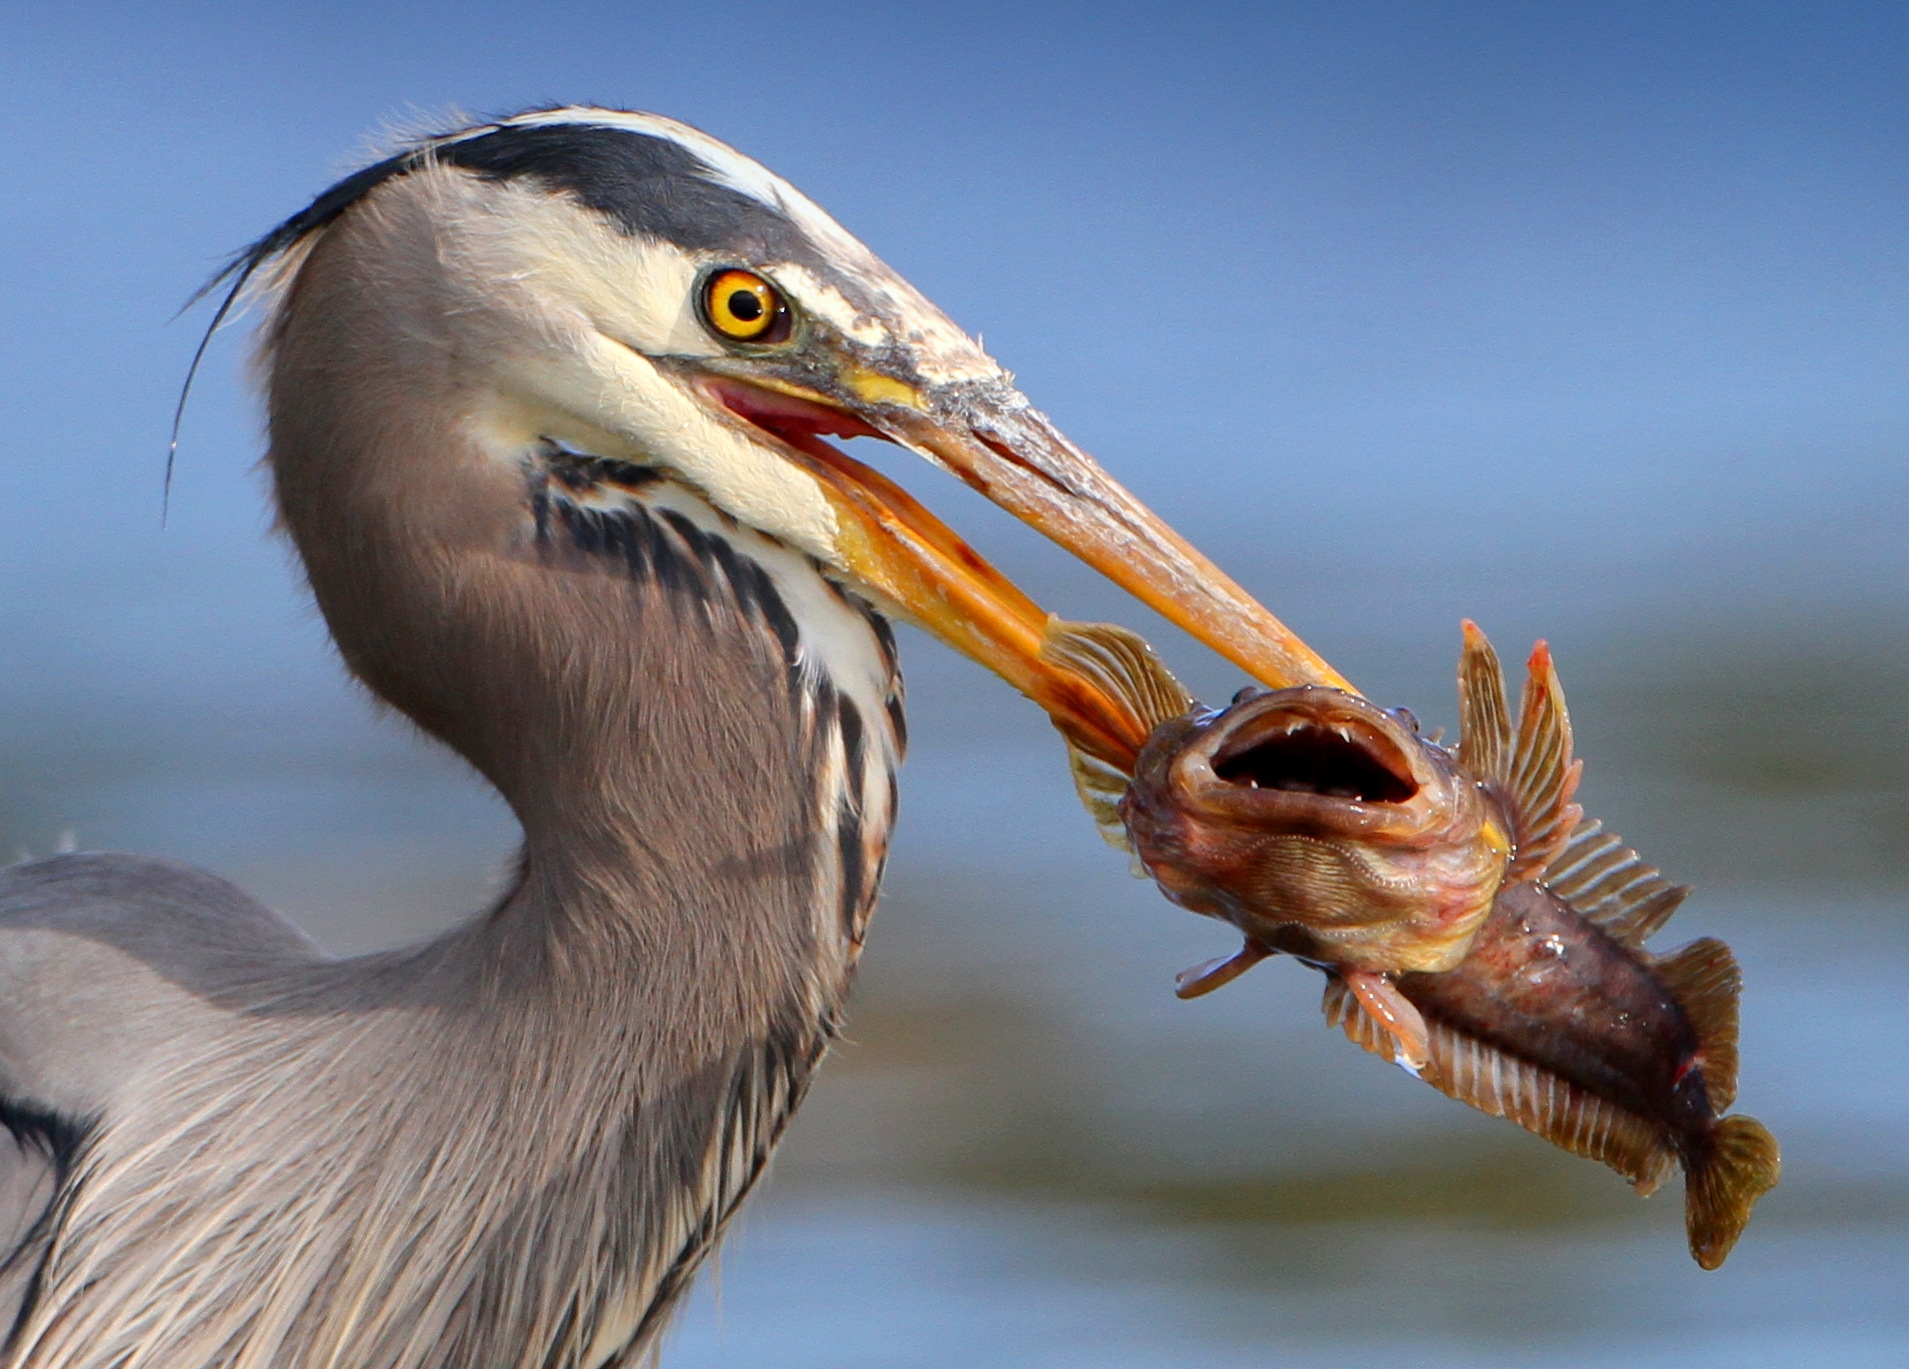 File:Bird eating fish.jpg - Wikimedia Commons